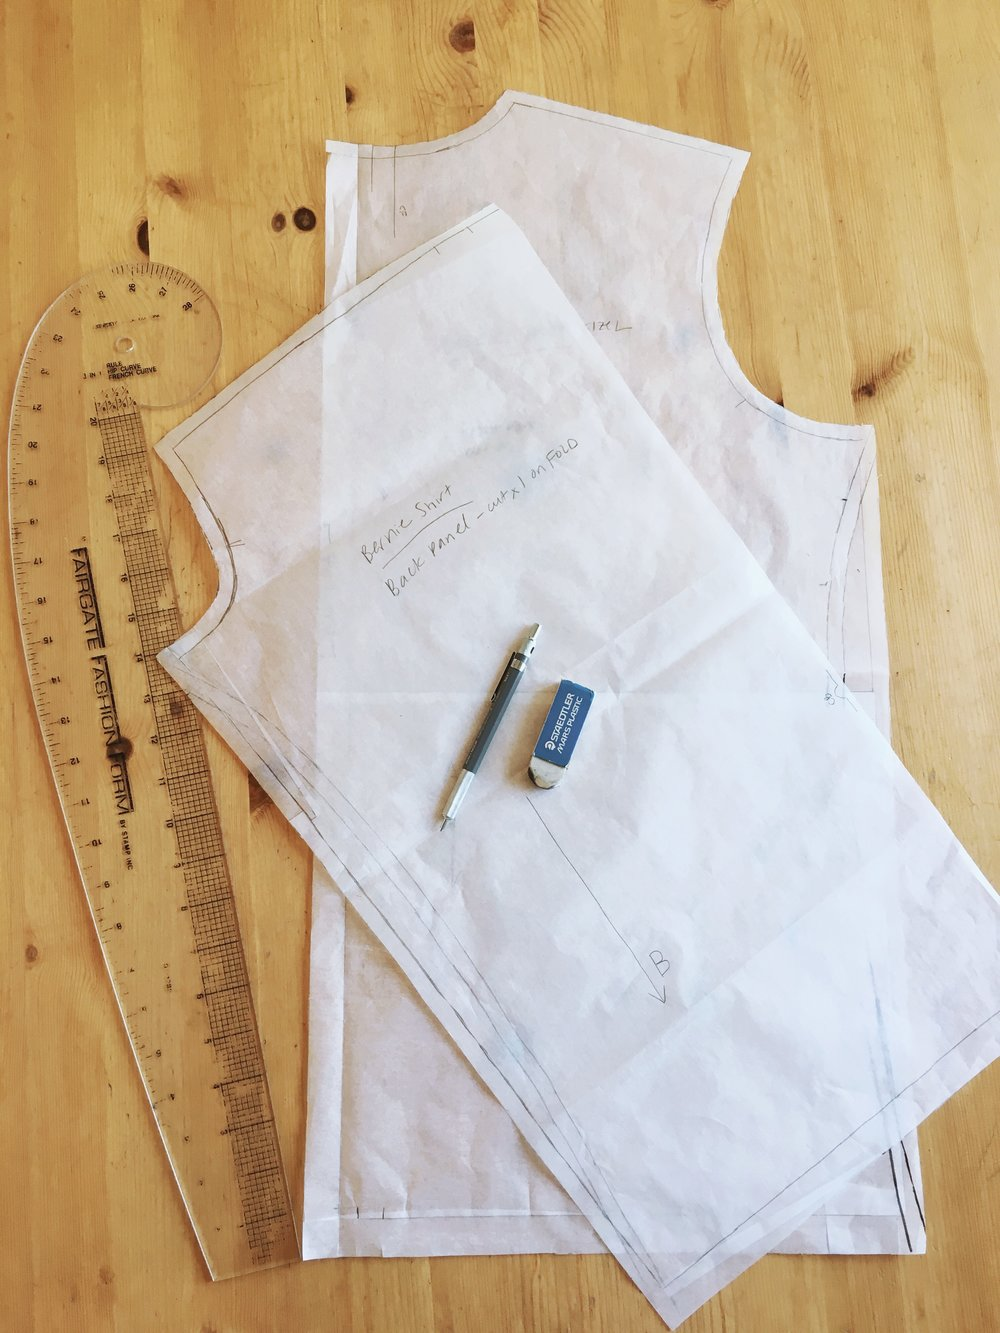 I traced the adjustment to the side seams on to my pattern pieces as best as I could.  I'll try to figure out how to true that intersection with the armscye later...